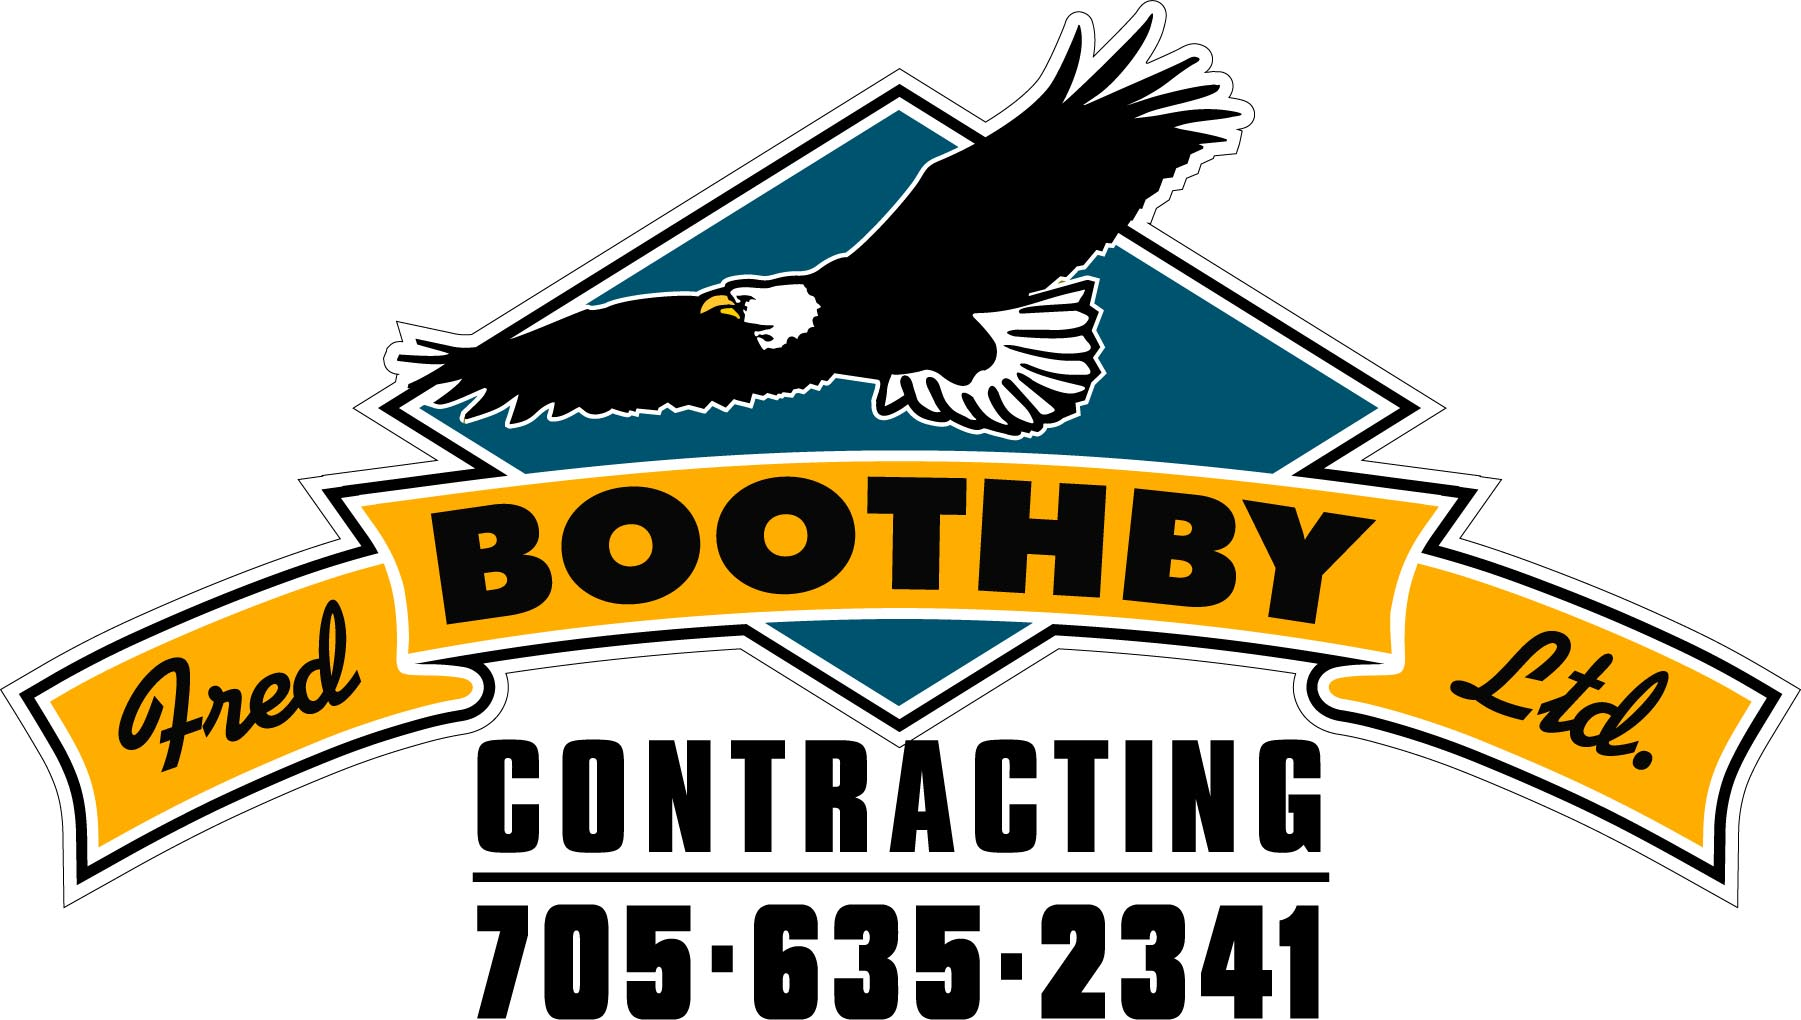 Fred Boothby Contracting logo